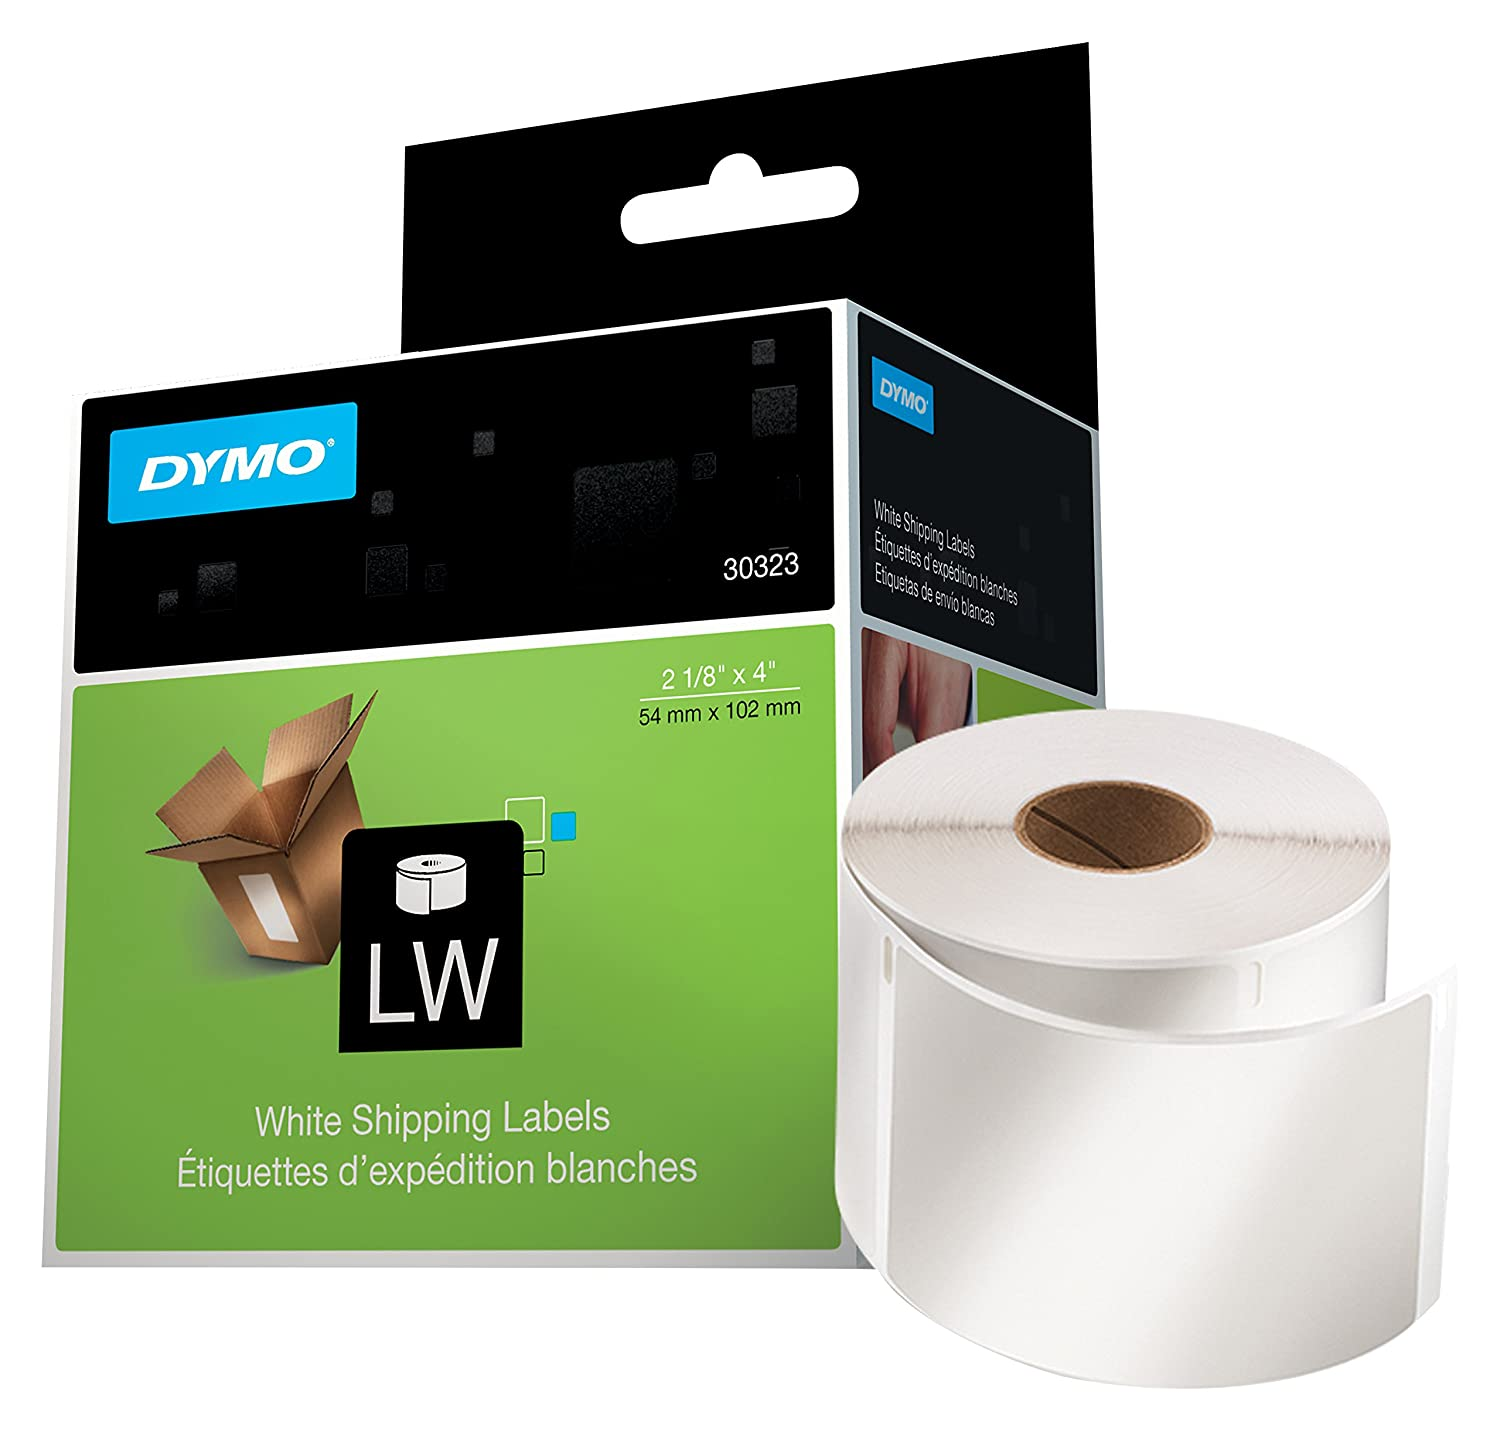 DYMO LaberWriter Standard Shipping Labels for LabelWriter Label Printers, 2 1/8- by 4-inch, White, Roll of 220 (30323) Sanford Brands Canada Office Supplies